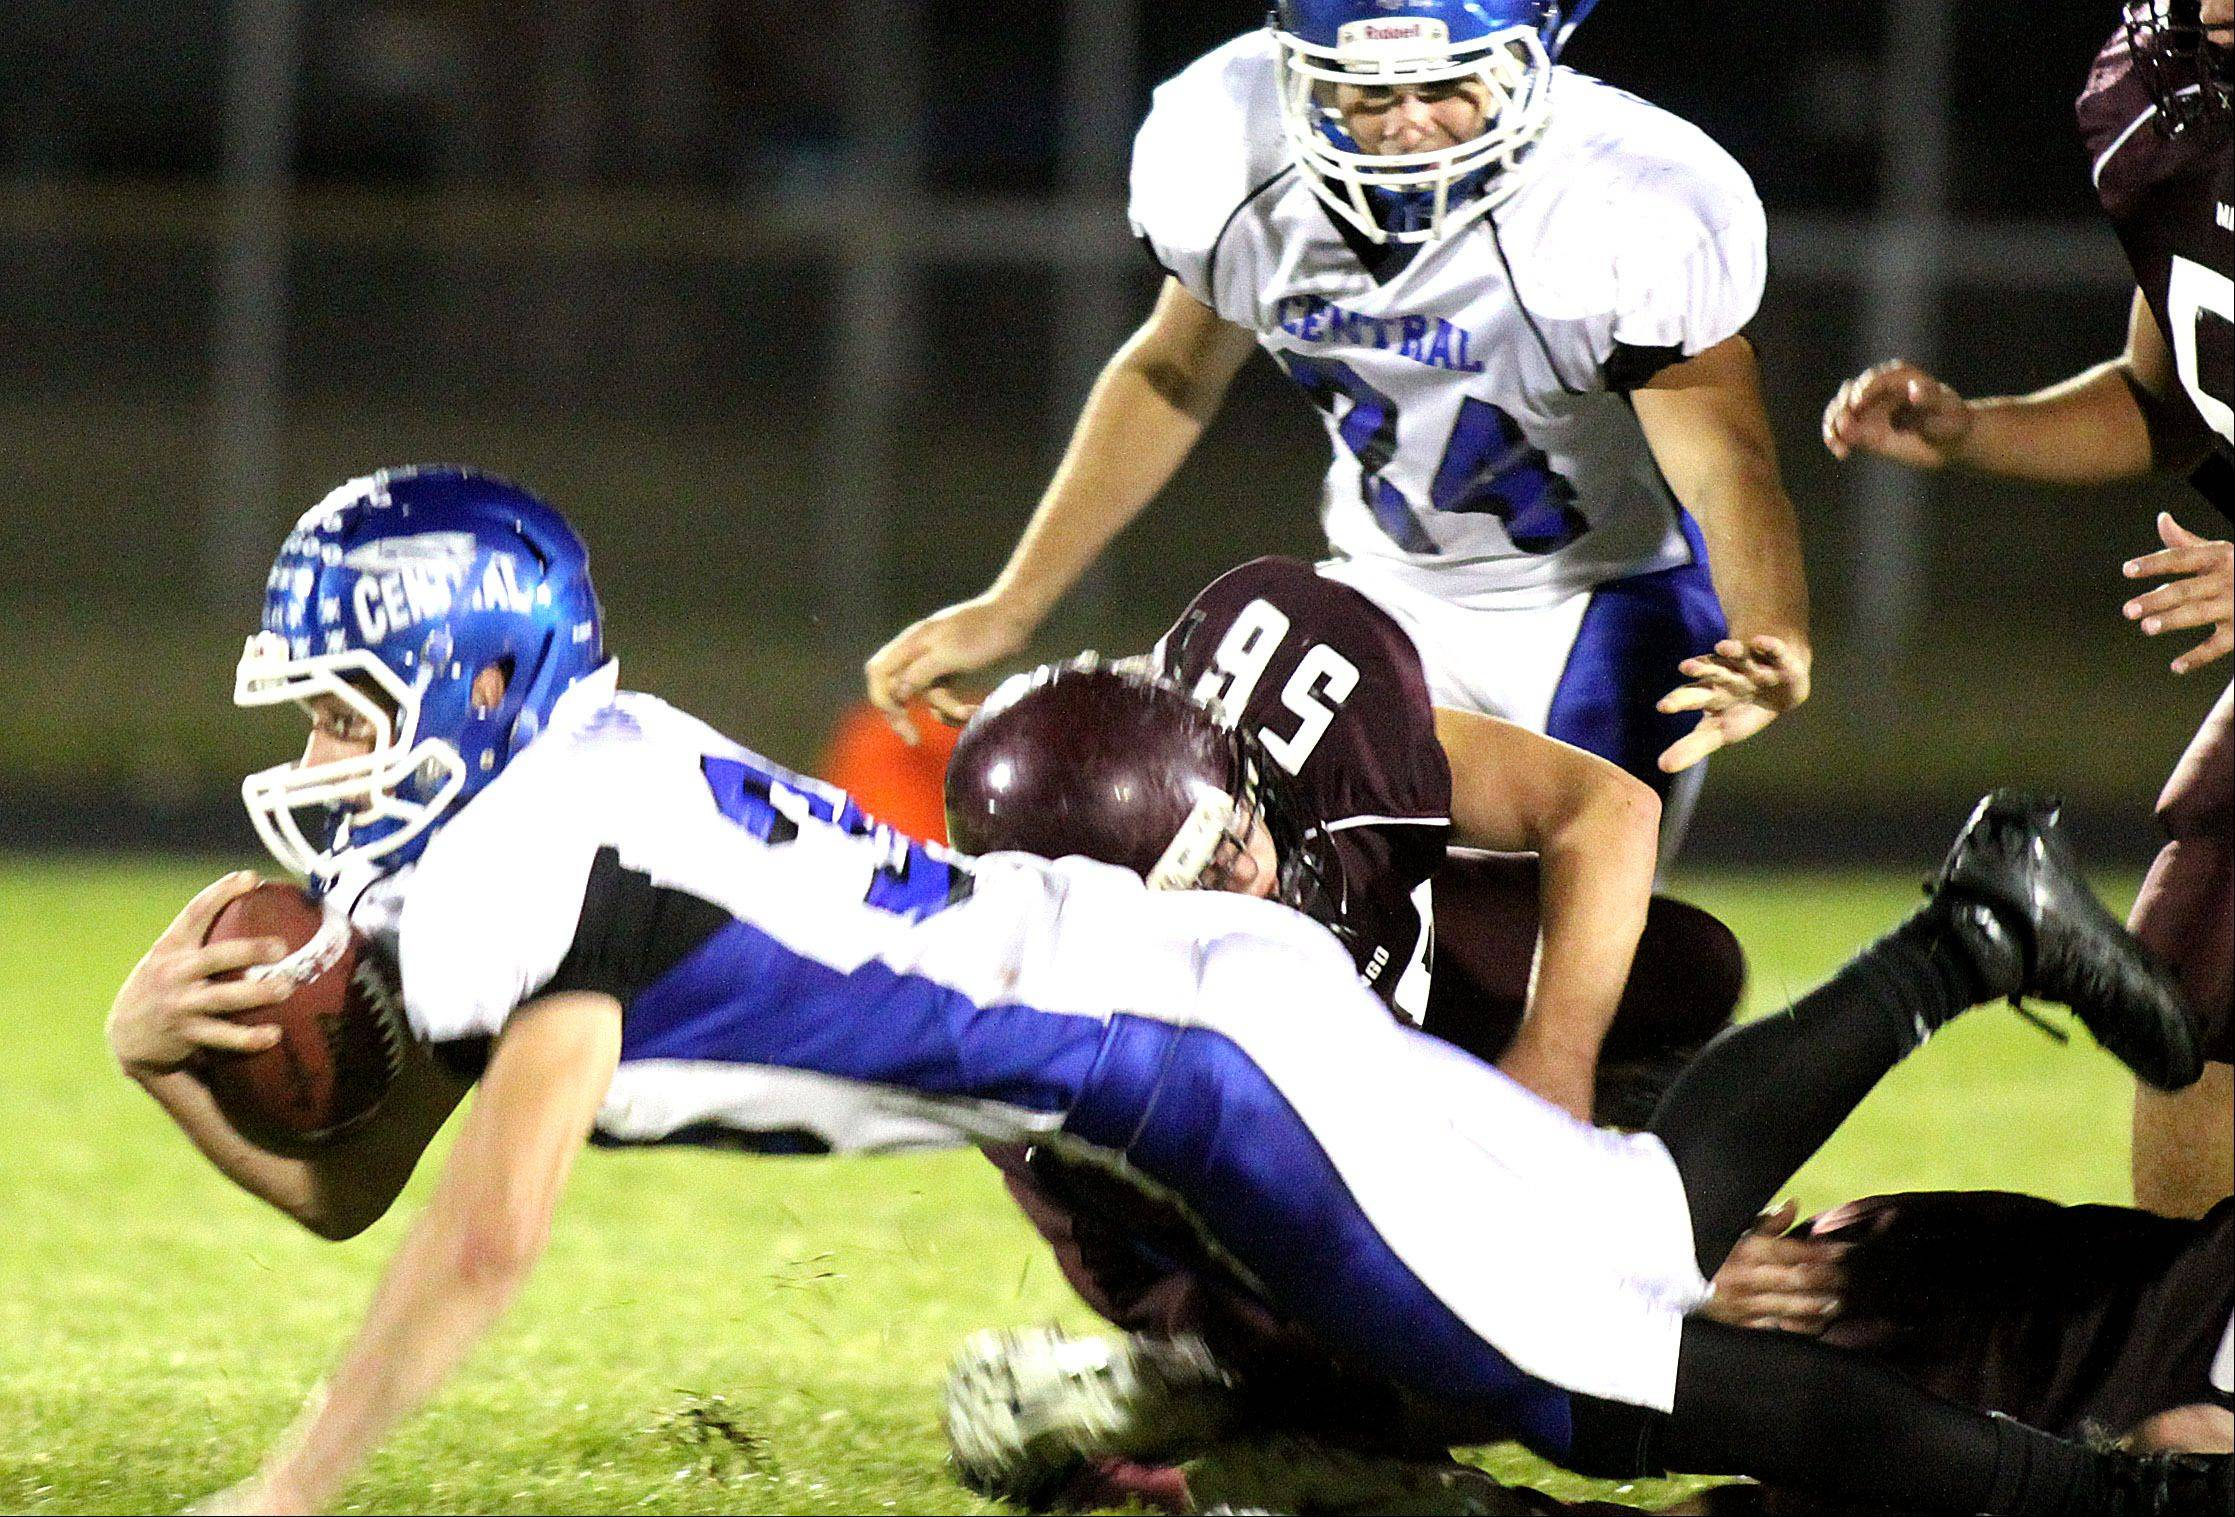 Burlington Central's Reilly Marino dives for yardage in the first half during a varsity football game at Rod Poppe Field in Marengo on Friday night.